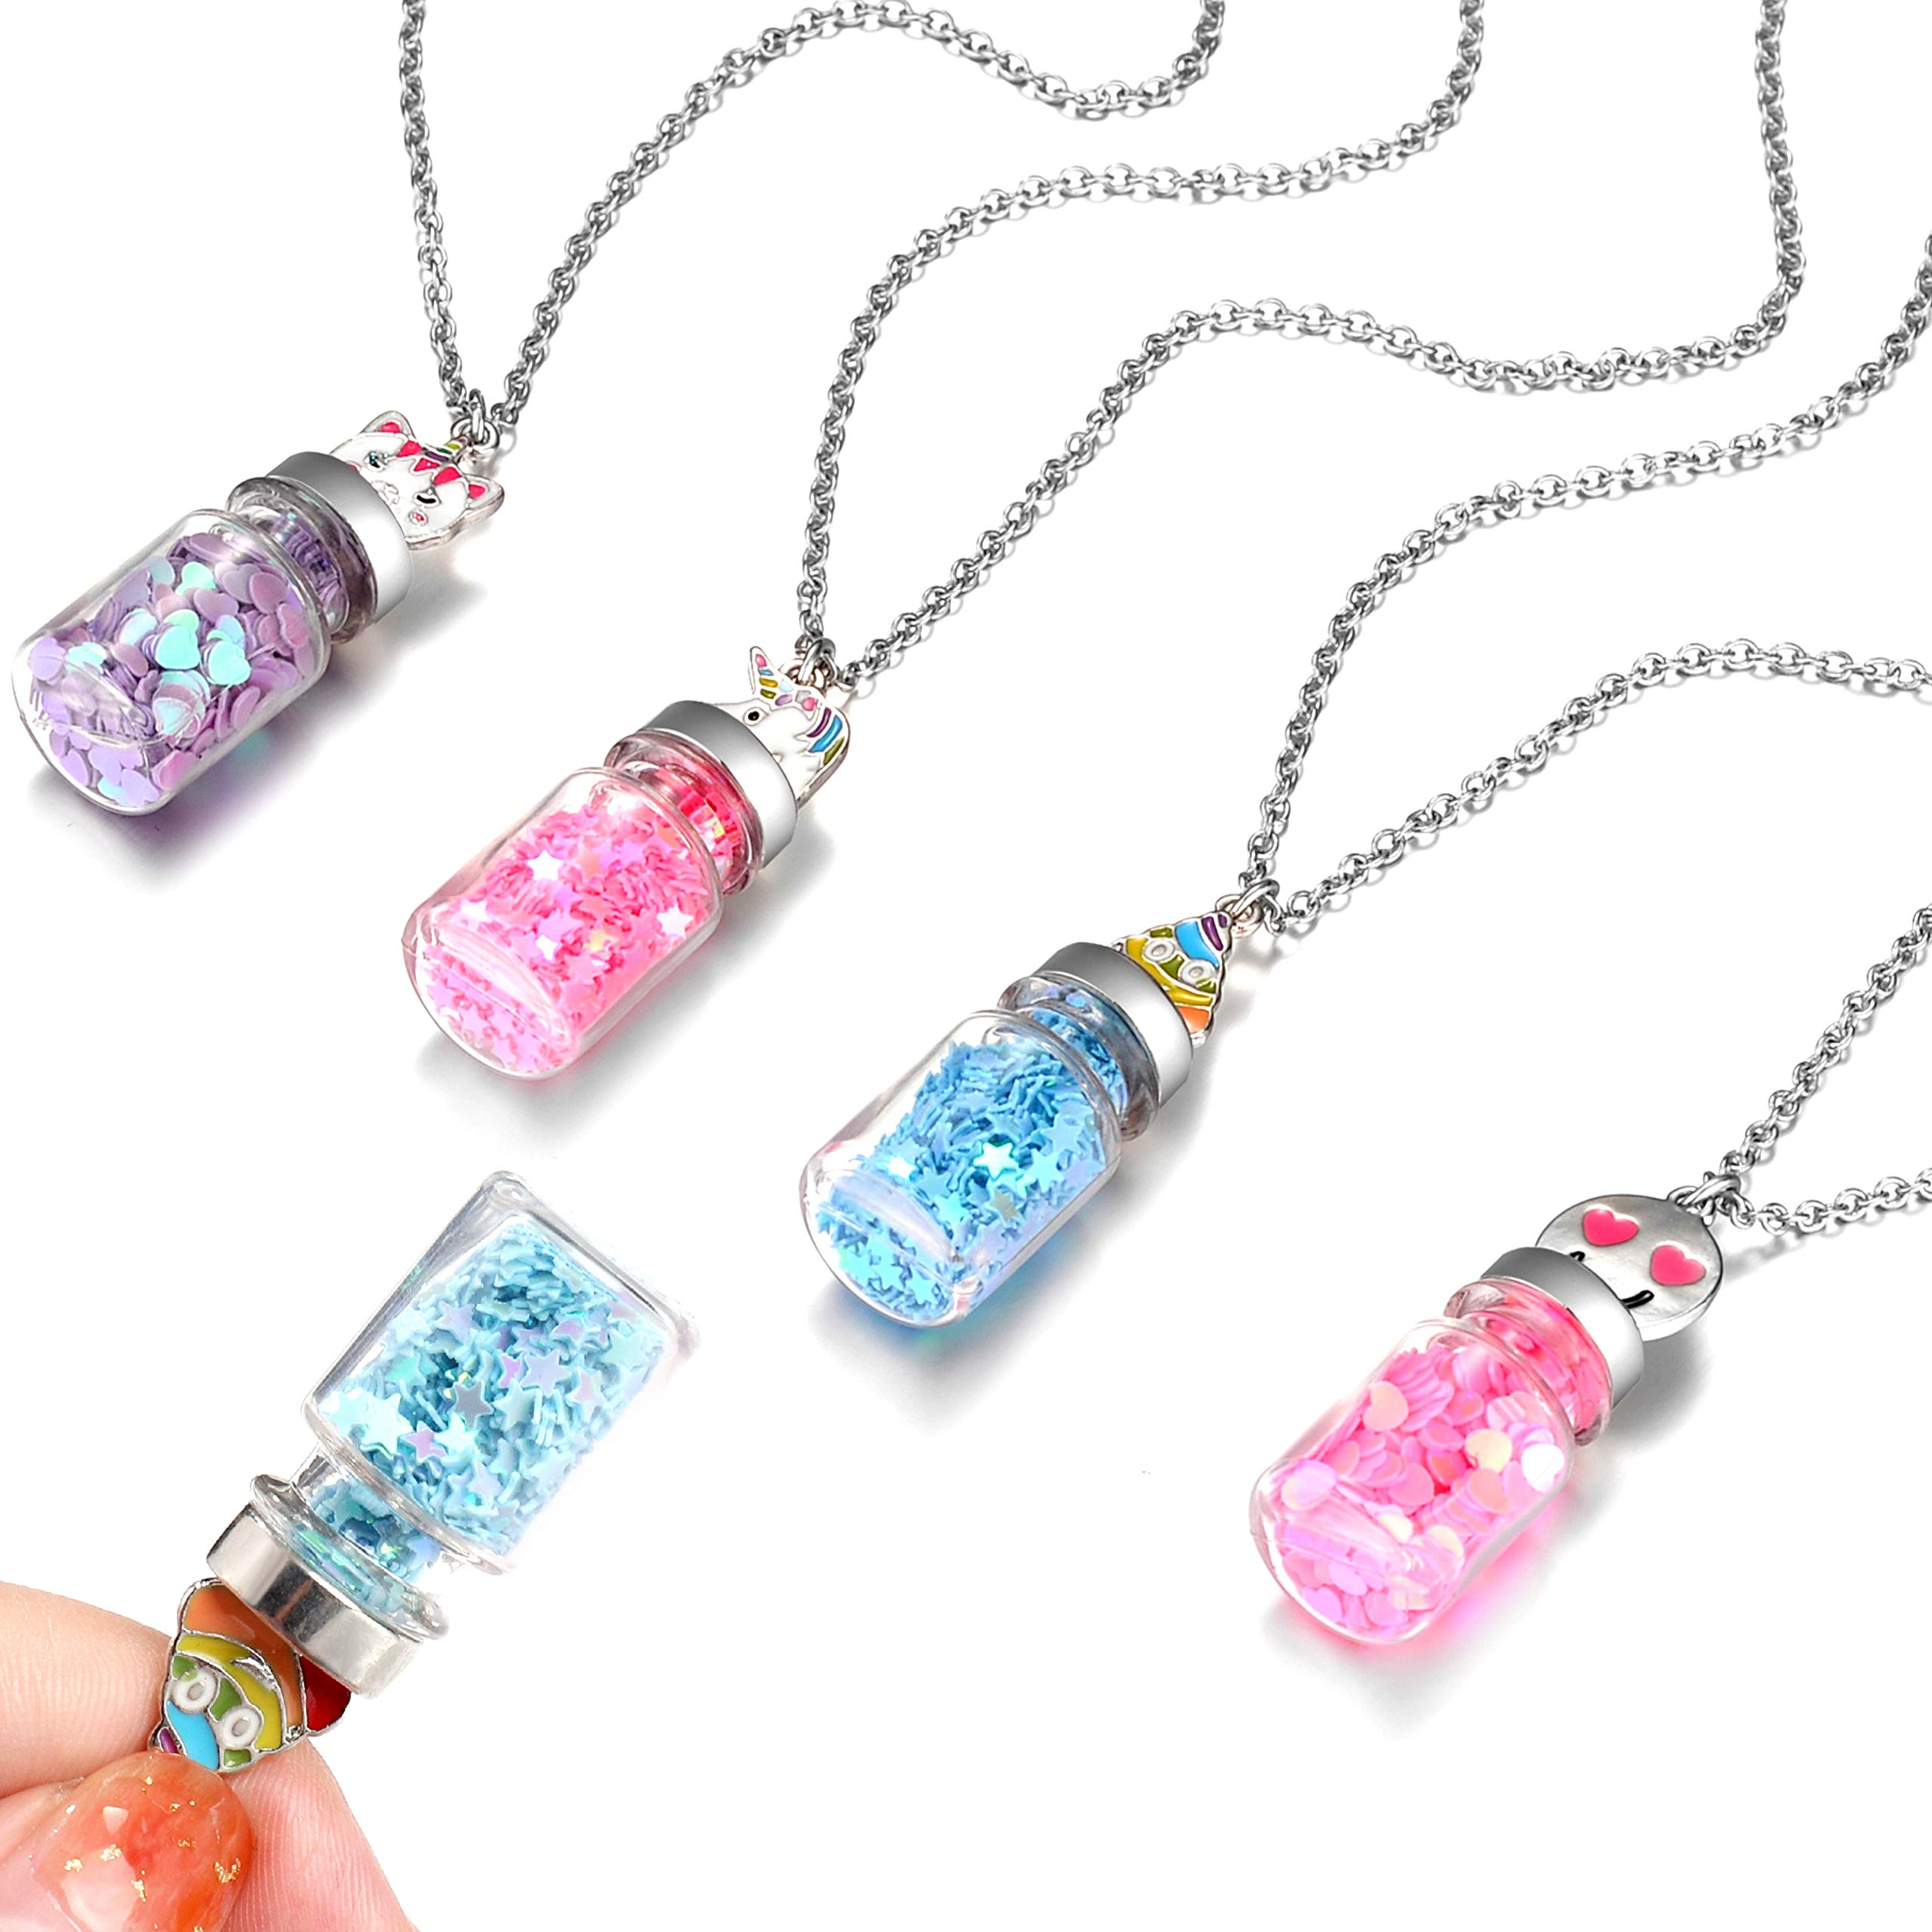 FROG SAC 4 PCS Magical Pixie Dust Little Girl Jewelry Necklace for Girls, Mini Glass Bottle Necklaces Kids Jewelry for Girls, Little Girls Jewelry Fairy Party Favors, Play Jewelry for Little Girls by FROG SAC